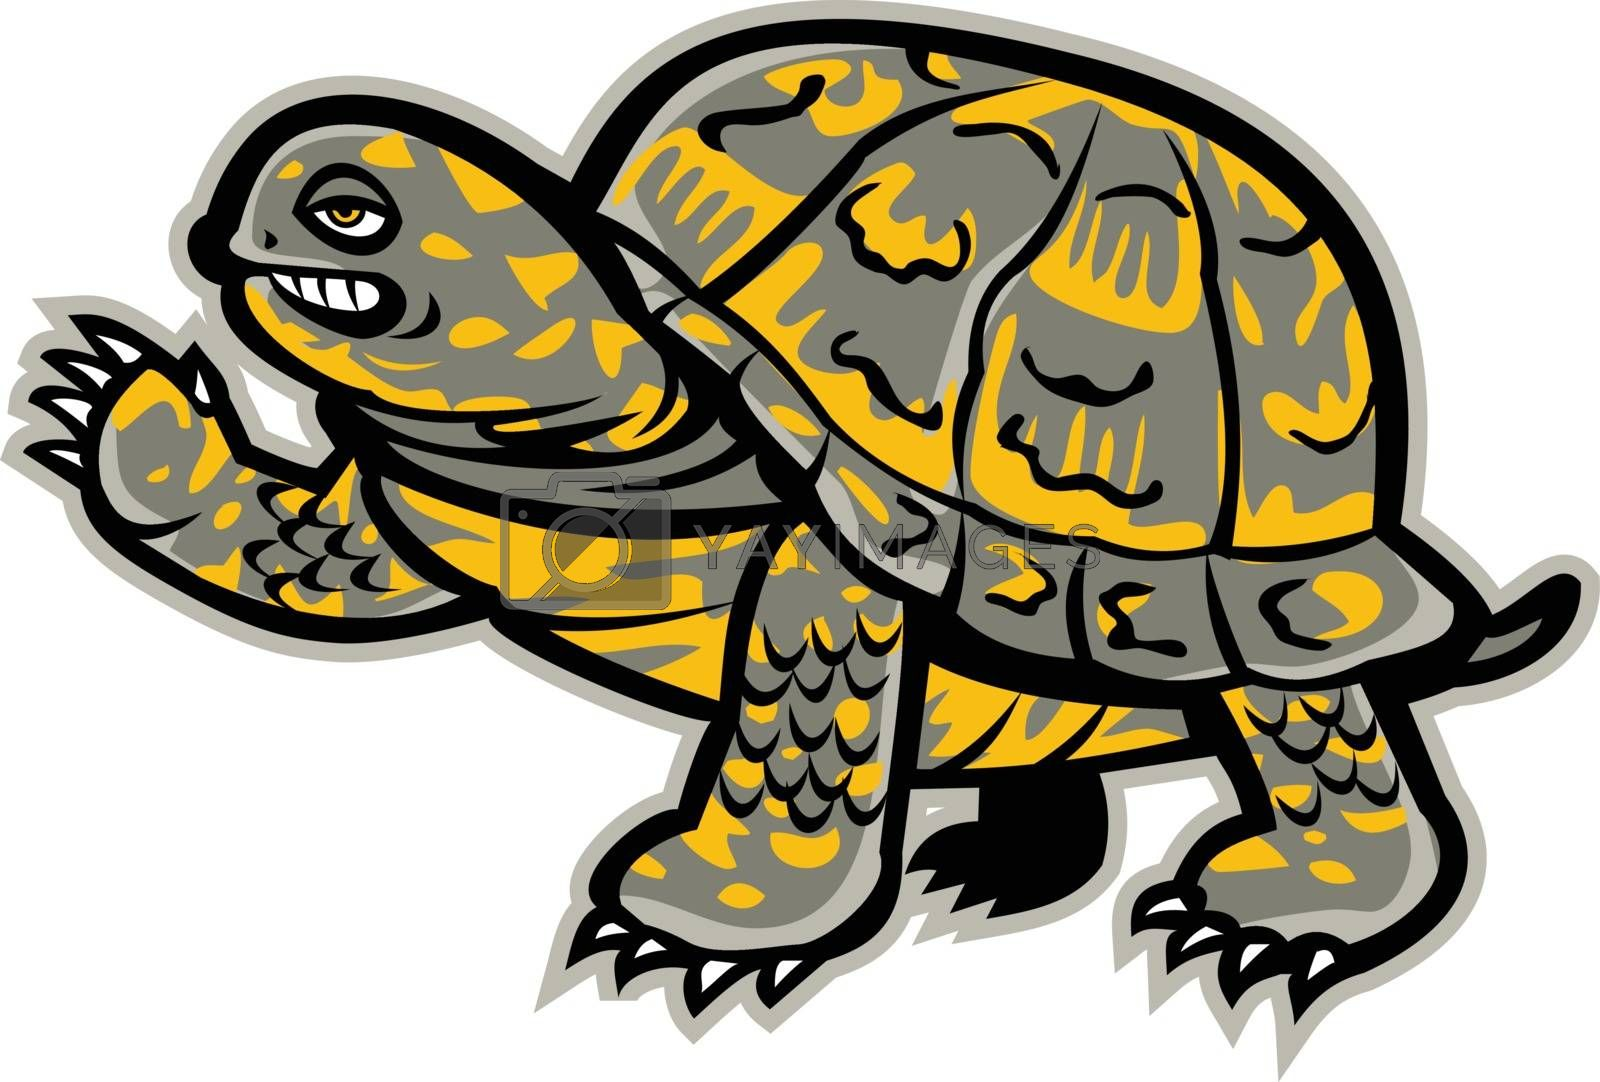 Mascot icon illustration of an eastern box turtle or land turtle, waving viewed from side on isolated background in retro style.